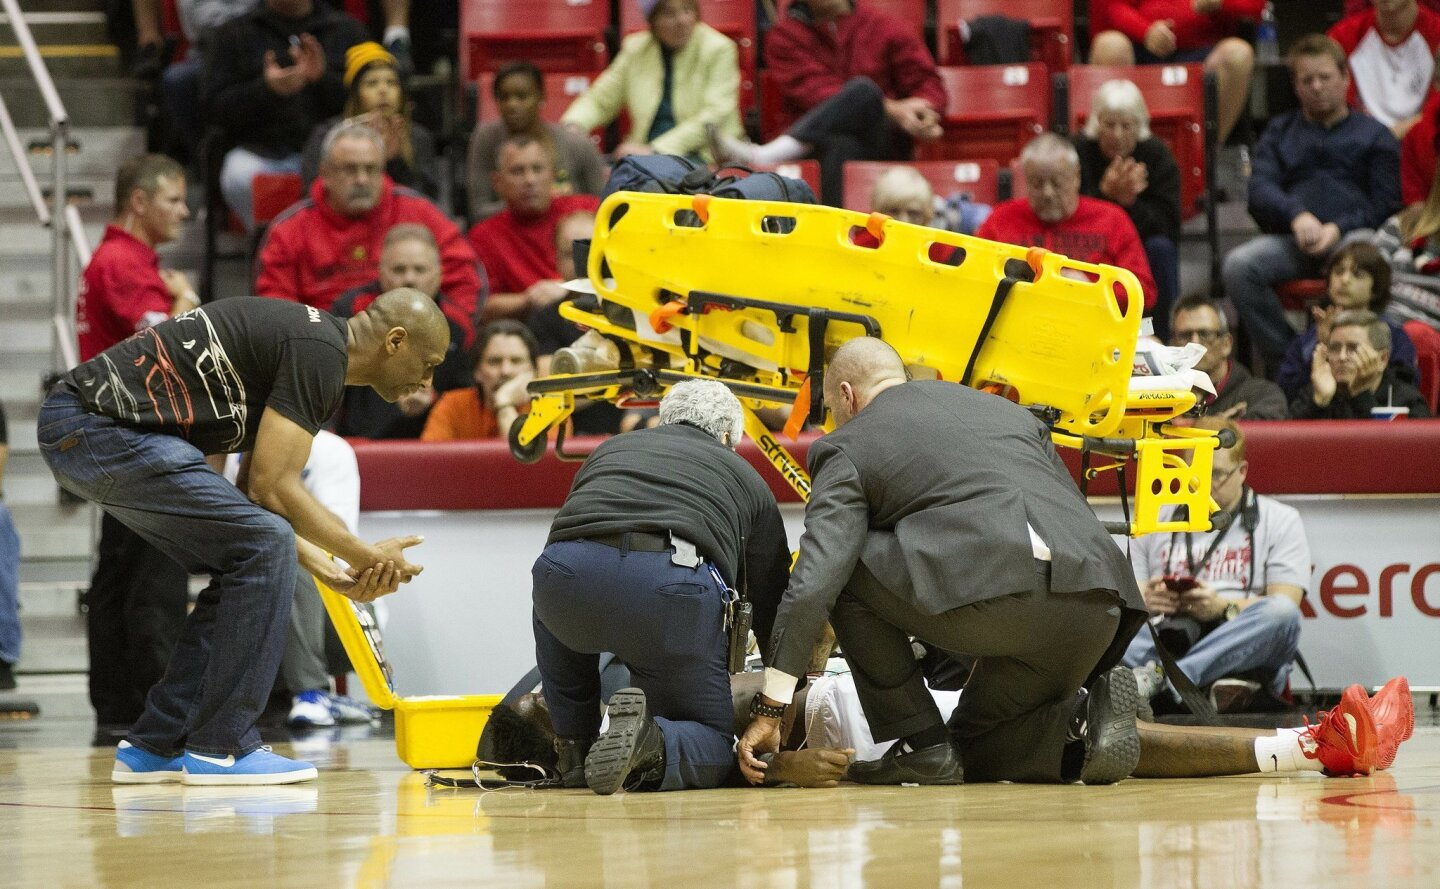 San Diego State Aztecs forward Dwayne Polee II (5) collapses and hits the floor during first half action against UC Riverside. He is seen being attended to by health staff as his father Dwayne Sr. stands over him (left).